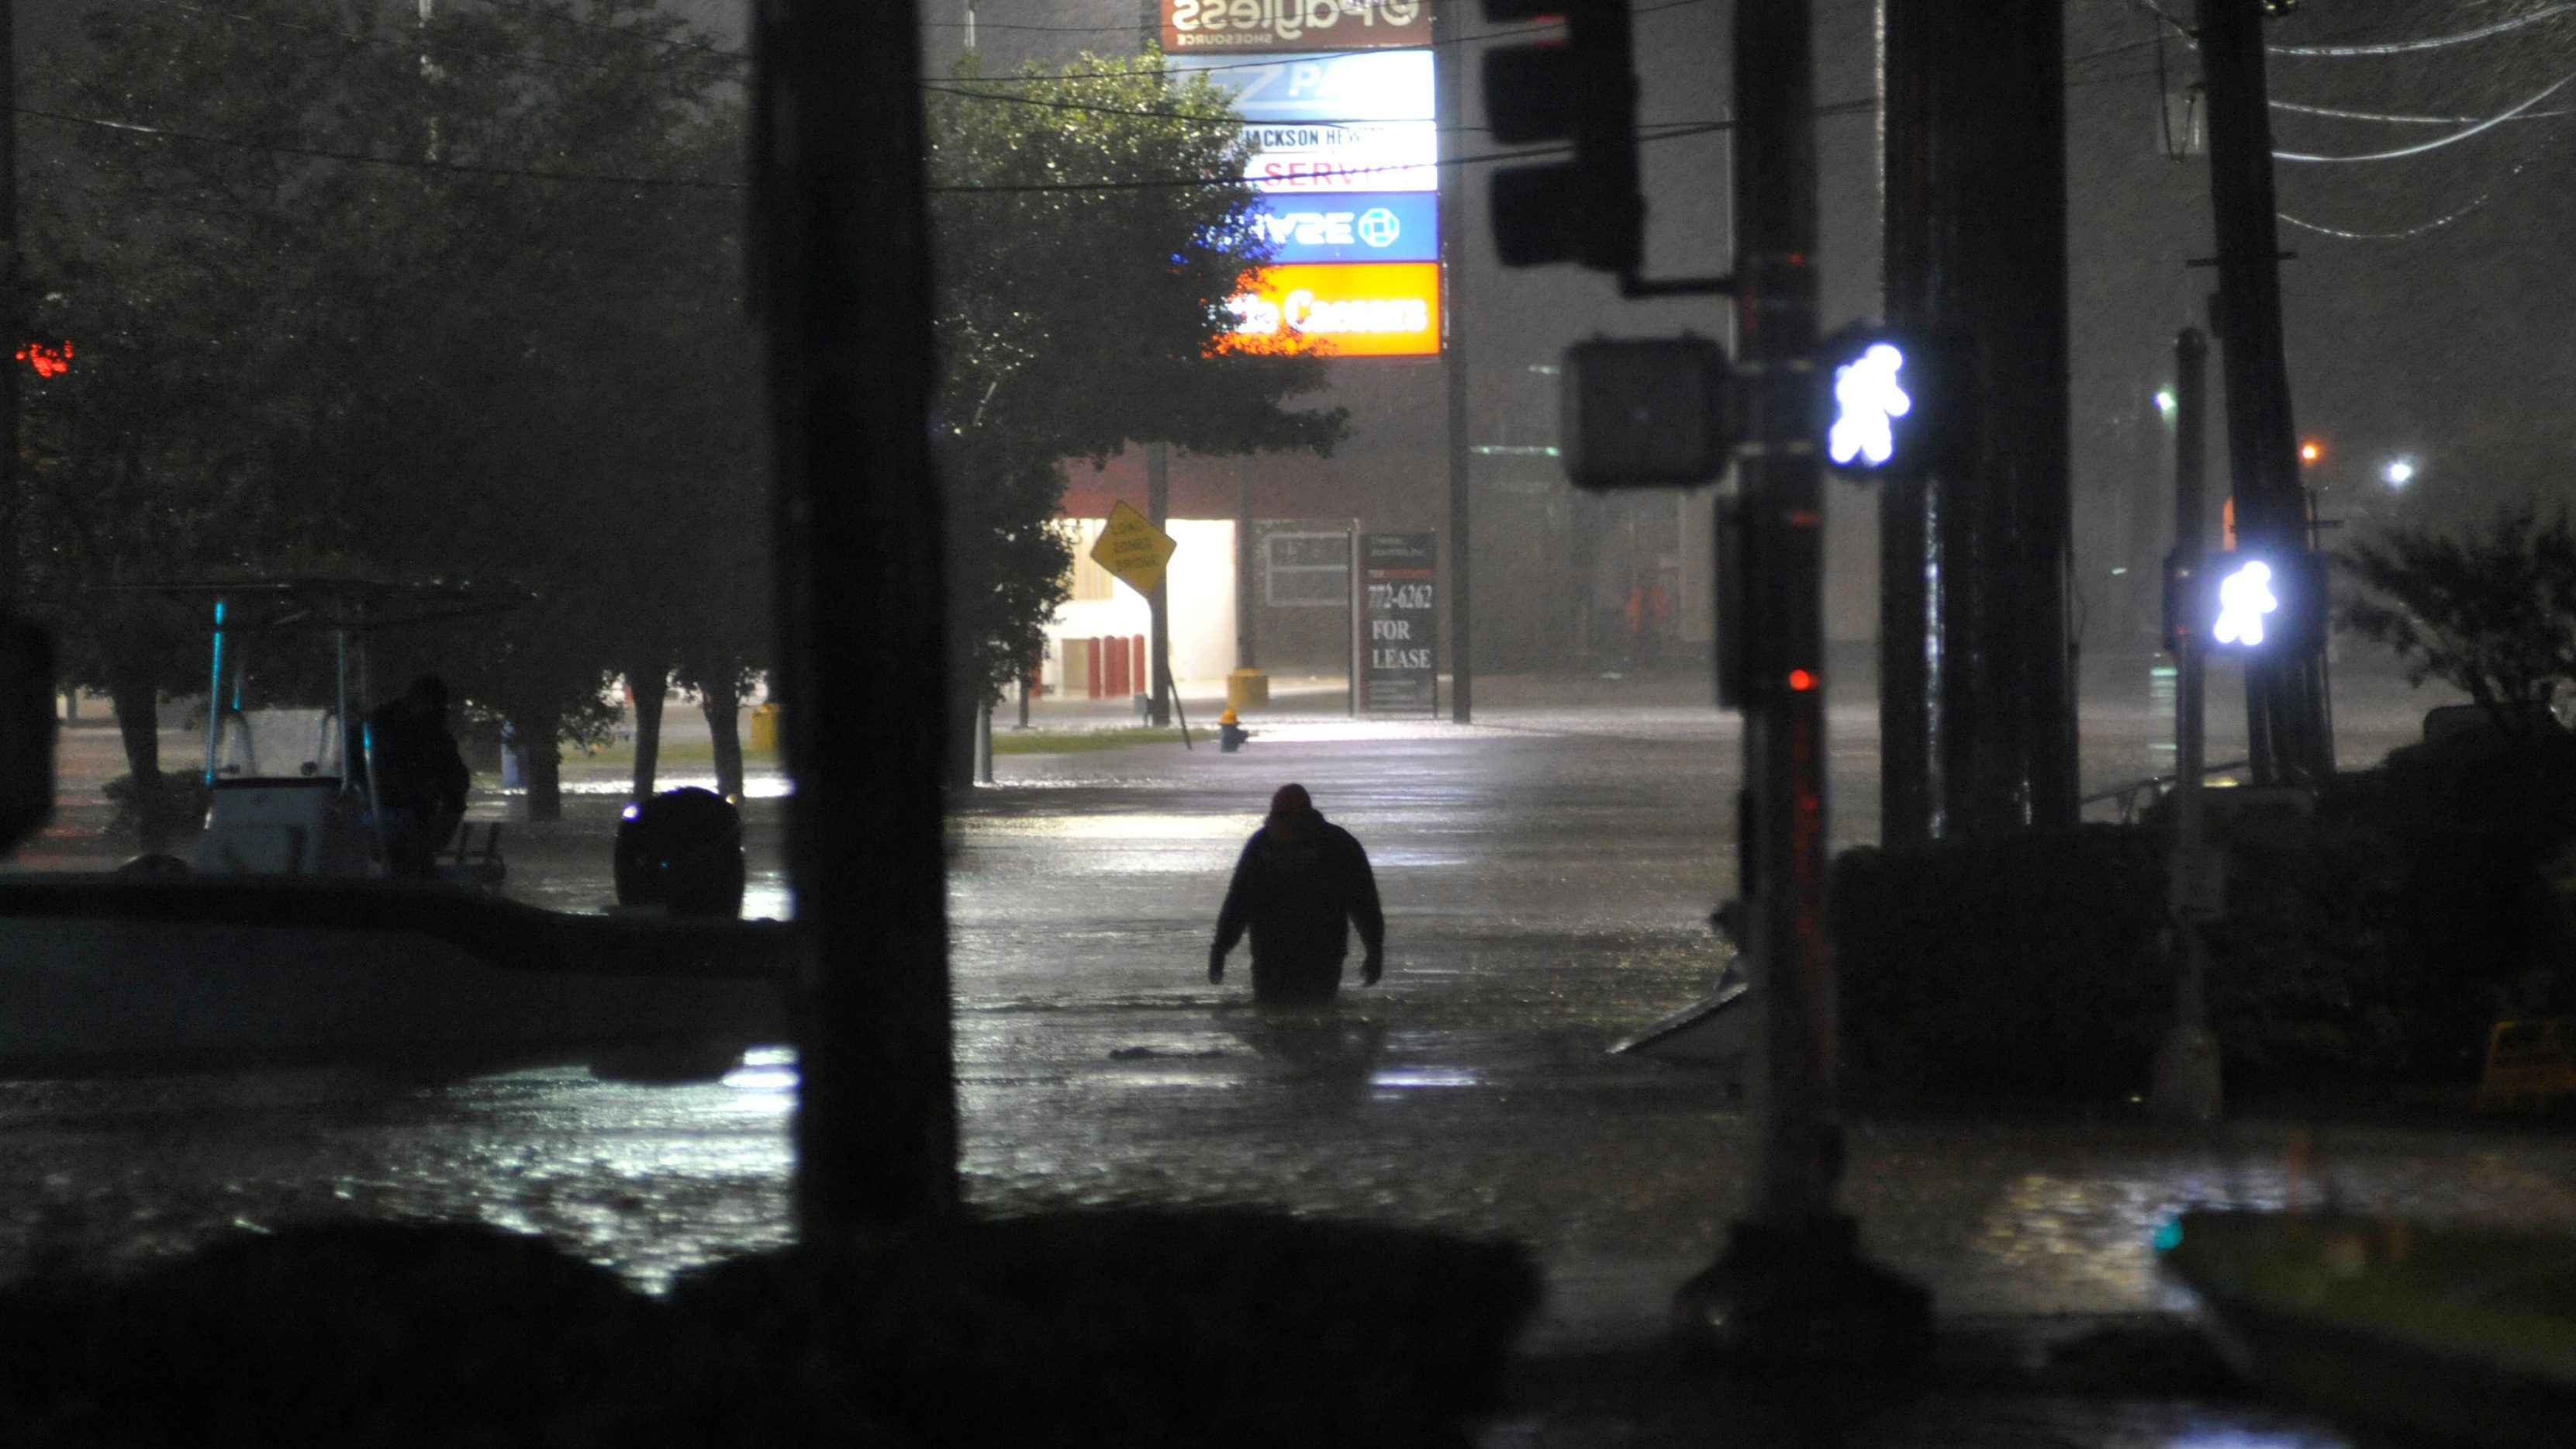 A man wades through floodwater after Hurricane Harvey inundated the Texas Gulf coast with rain causing widespread flooding, in Houston